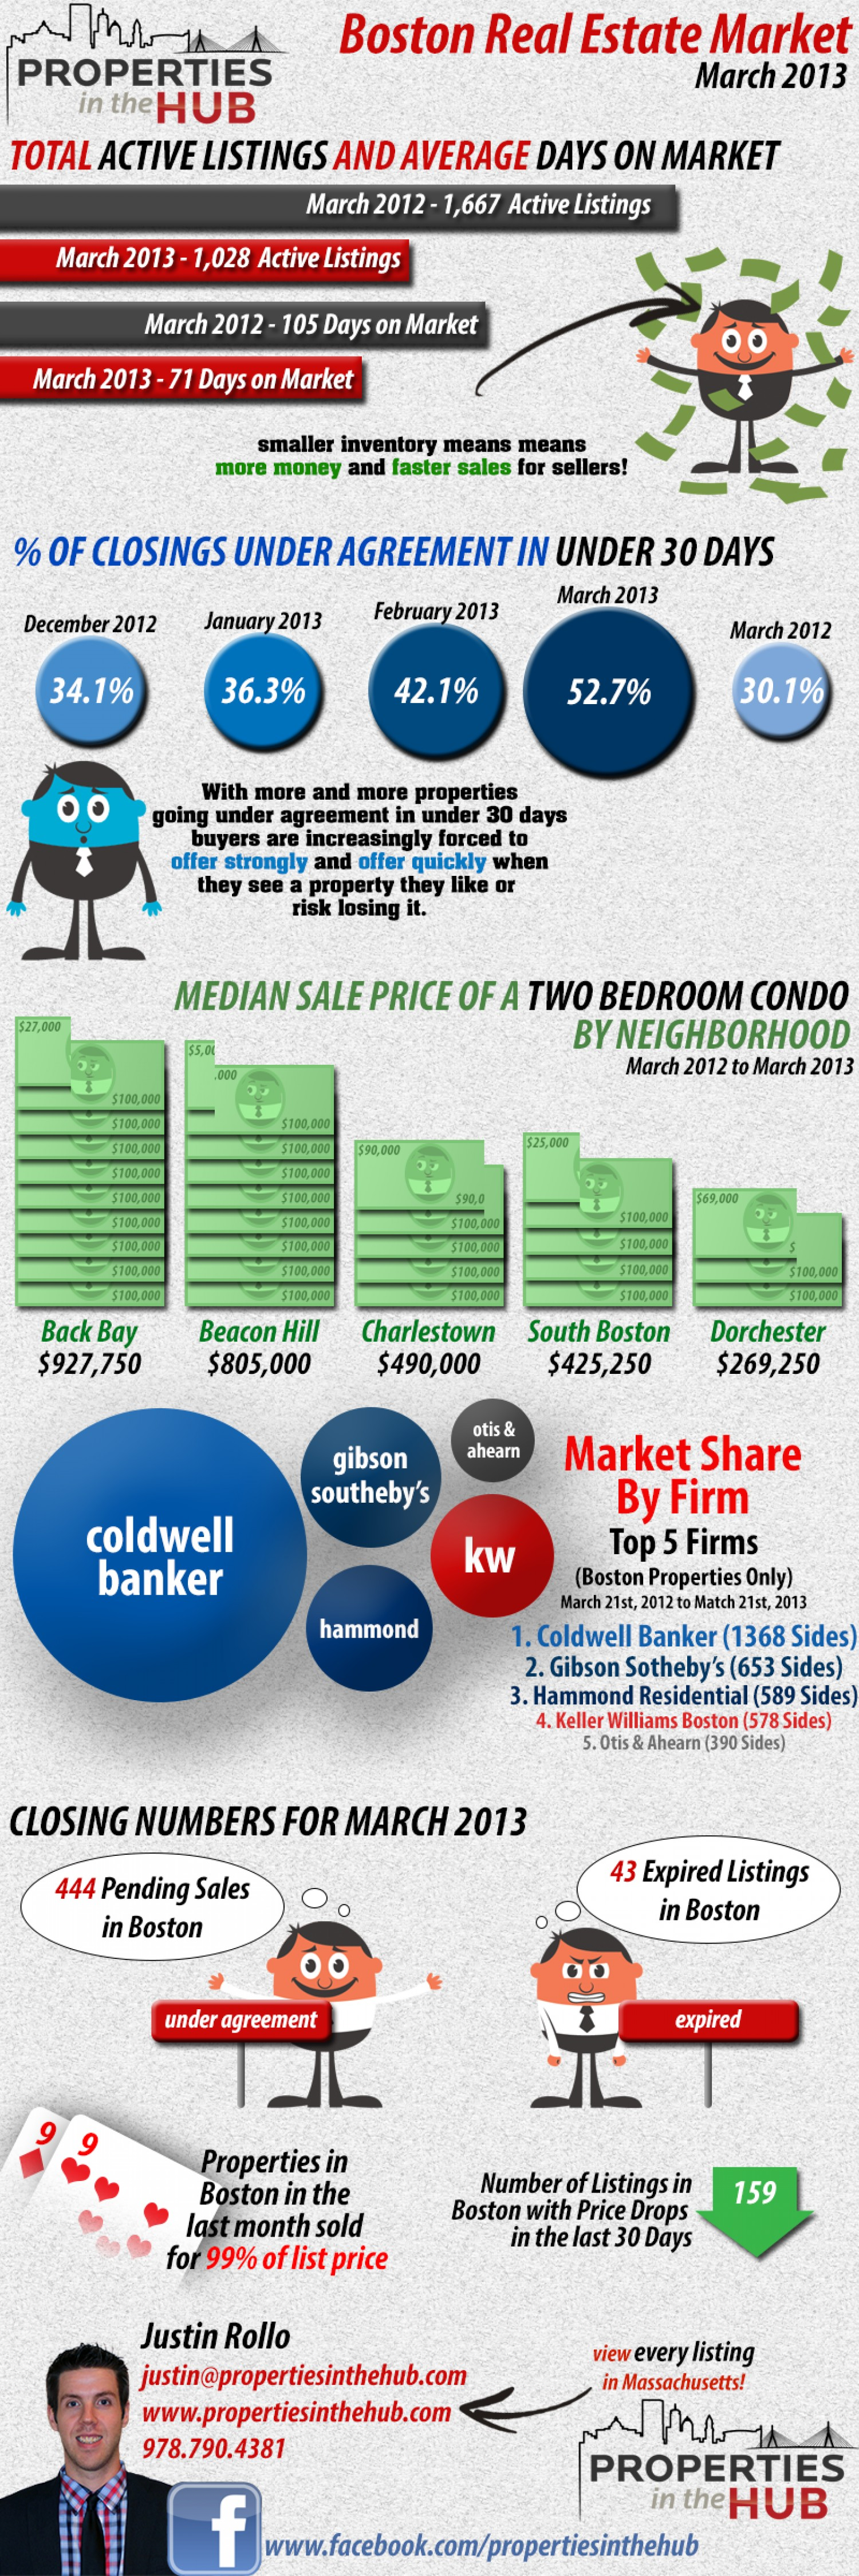 Boston real estate market March 2013